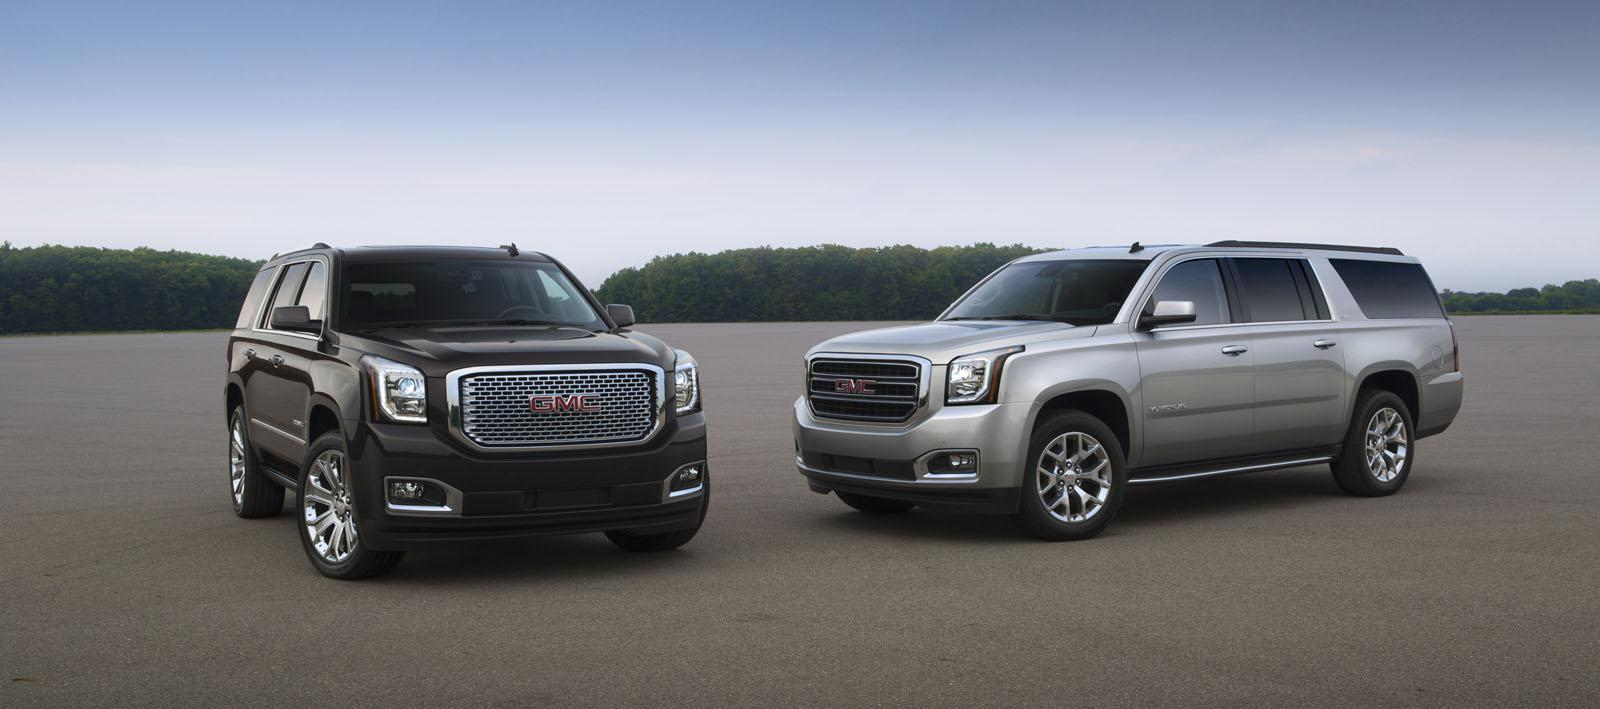 2015 gmc yukon denali yukon xl revealed video. Black Bedroom Furniture Sets. Home Design Ideas